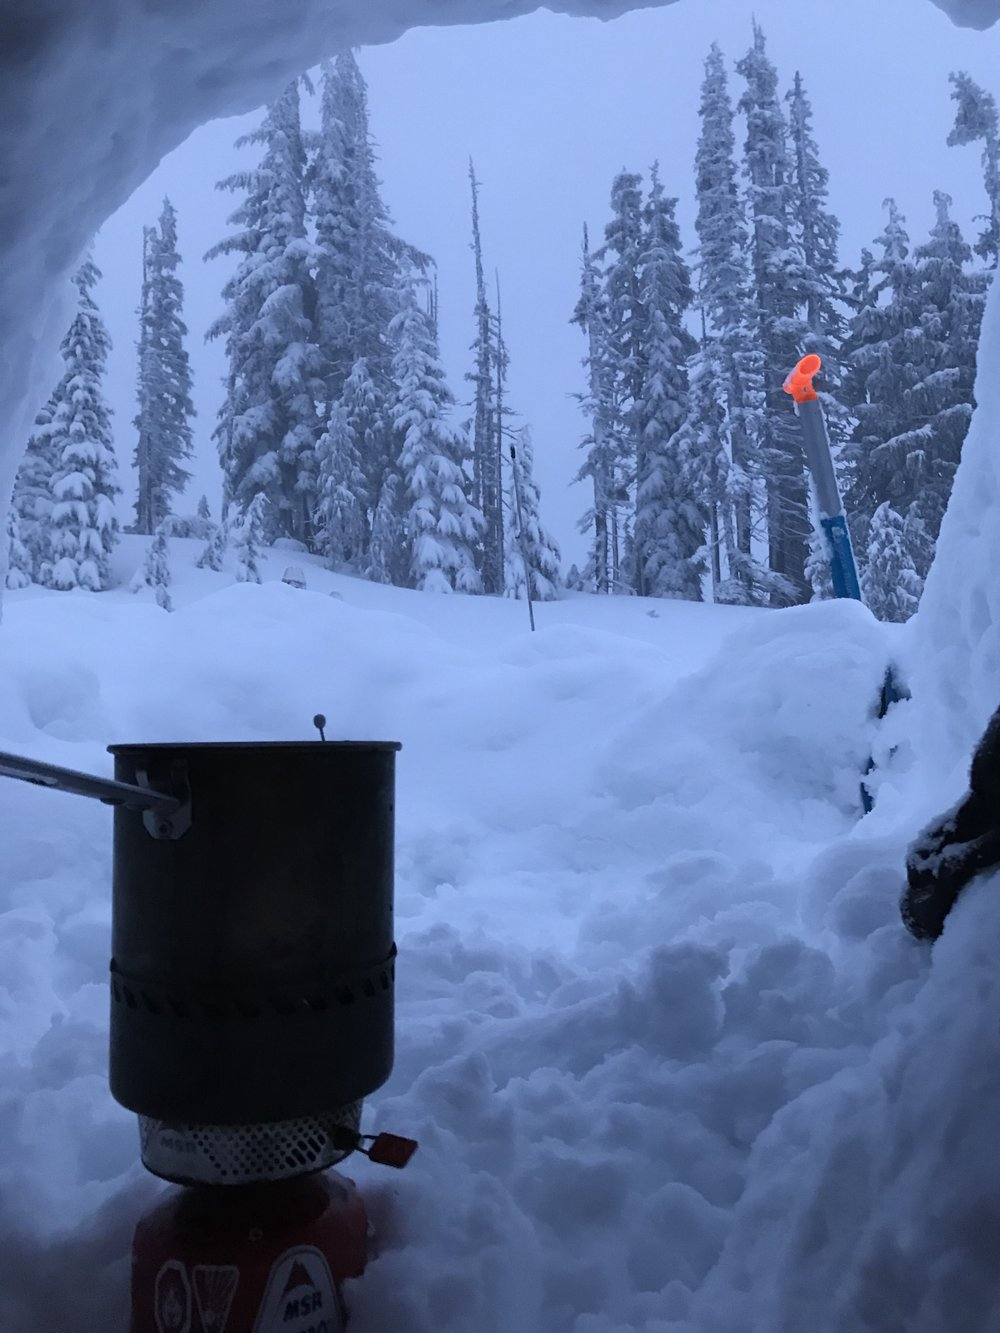 Morning view from inside the snow cave.